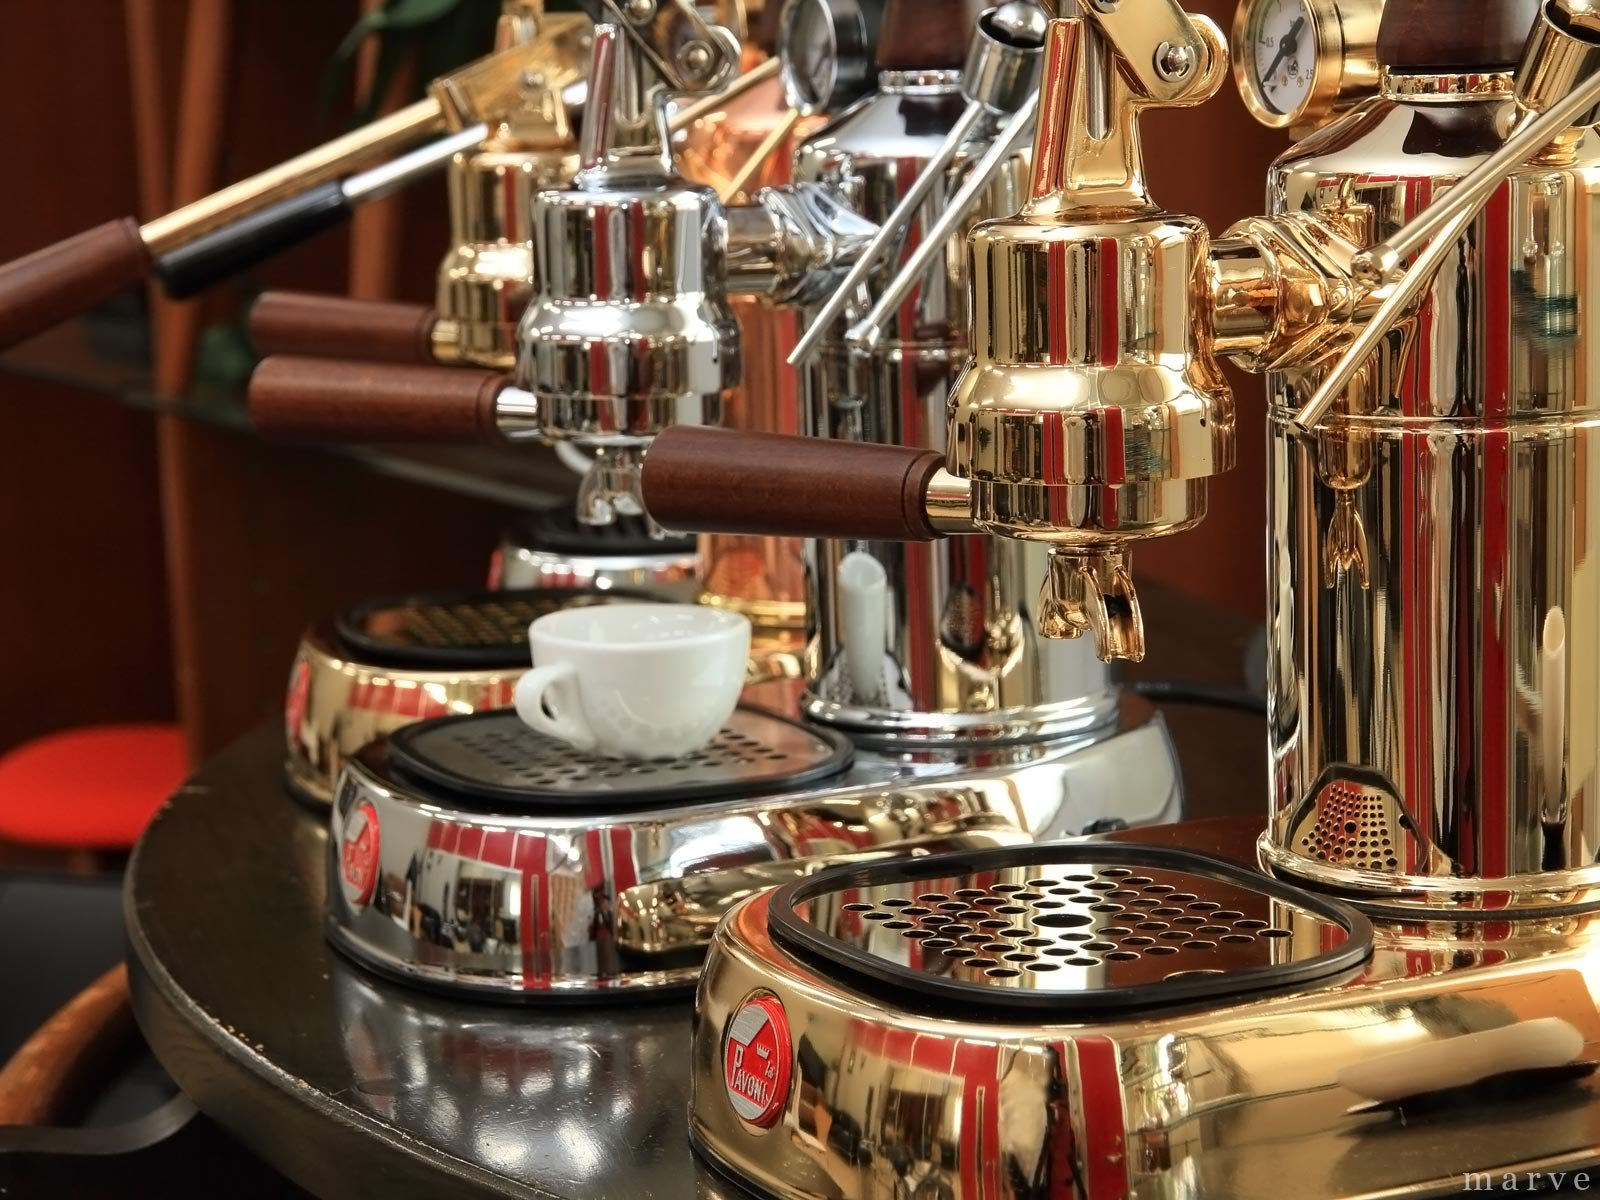 """la Pavoni パボーニ""""PROFESSIONAL""""PDH 【GOLD】ゴールドボディ エスプレッソマシン<img class='new_mark_img2' src='https://img.shop-pro.jp/img/new/icons16.gif' style='border:none;display:inline;margin:0px;padding:0px;width:auto;' />"""